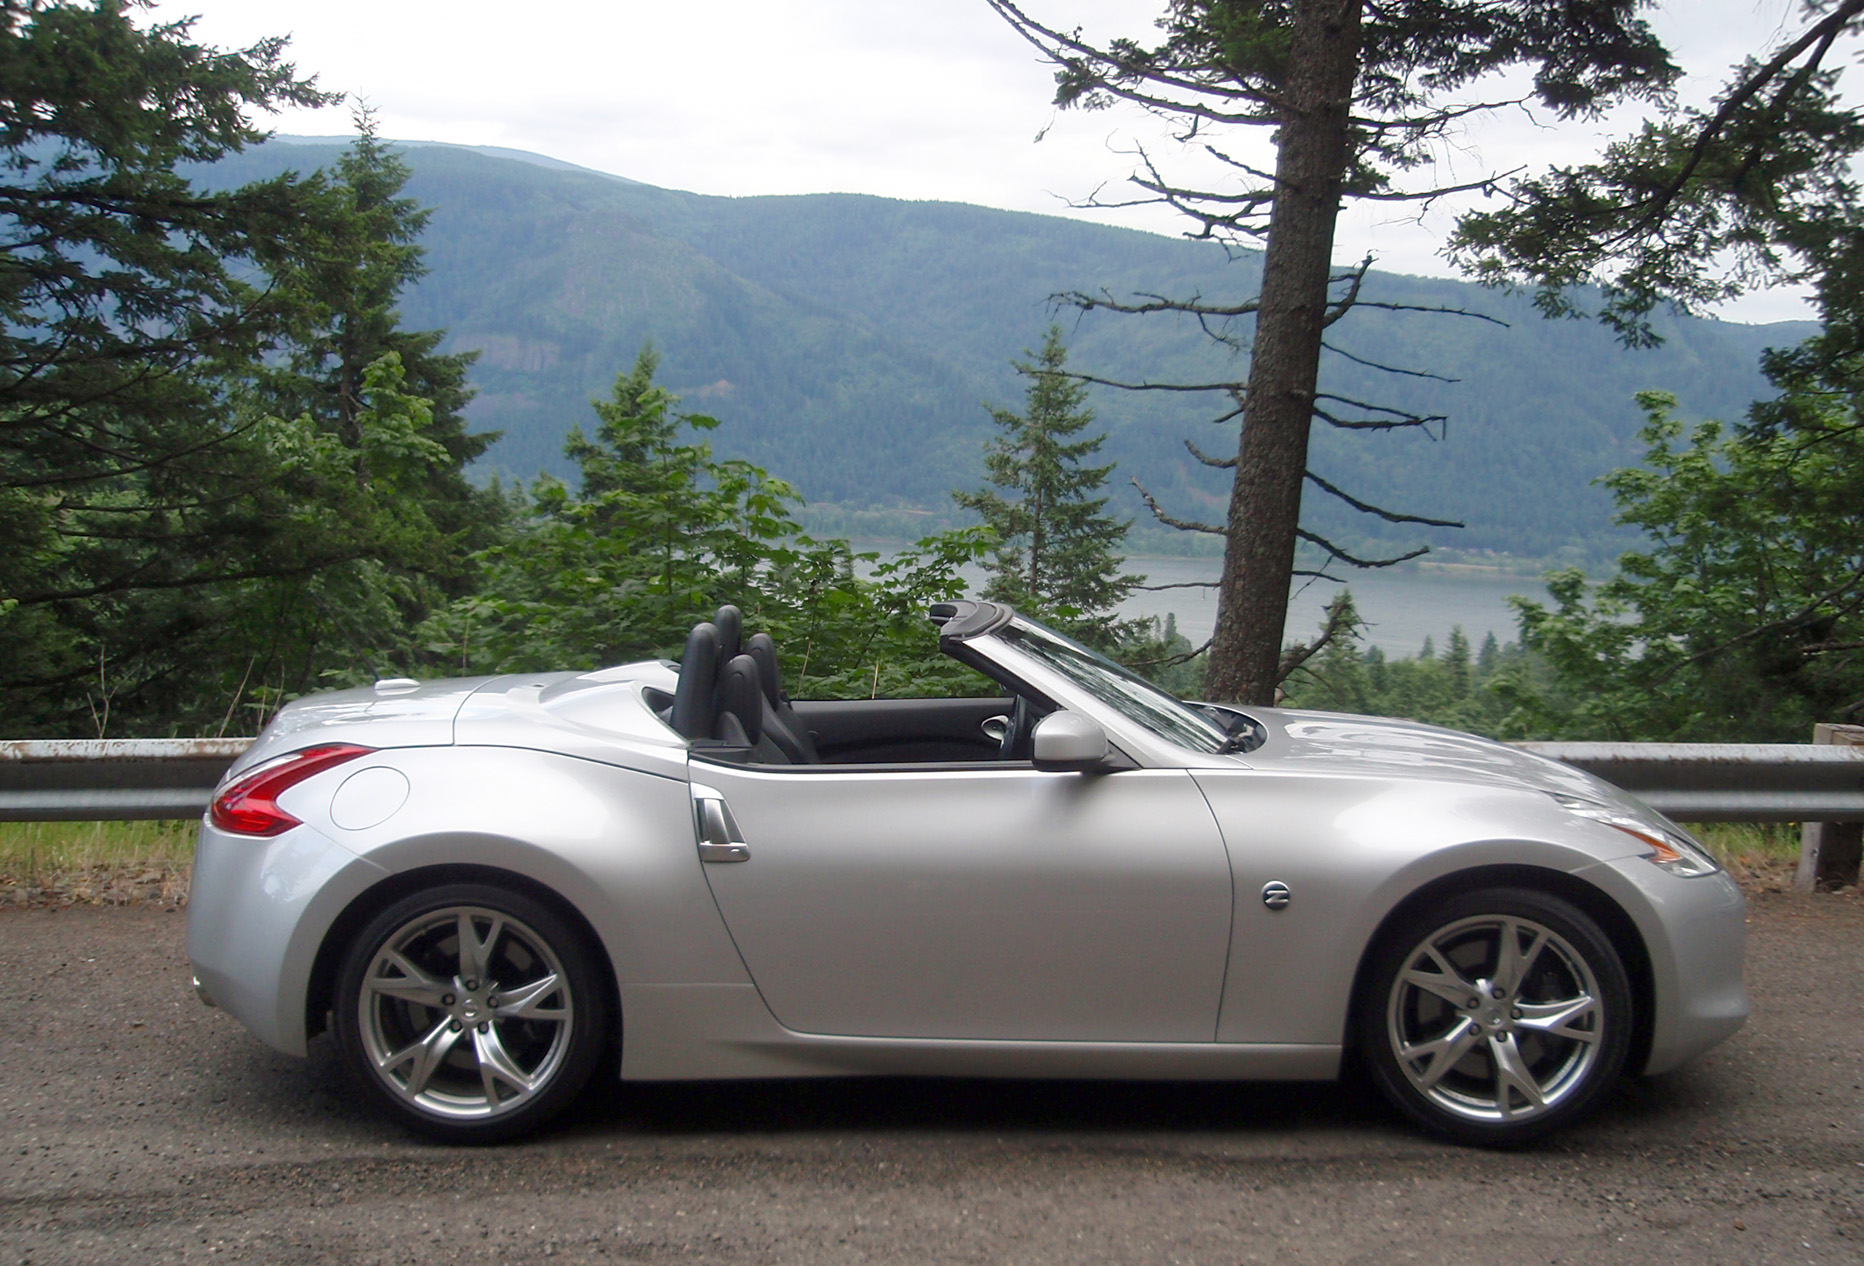 wheel parkway trim nissan convertible img touring luxury select option sport buildandprice rear dr manual drive color at